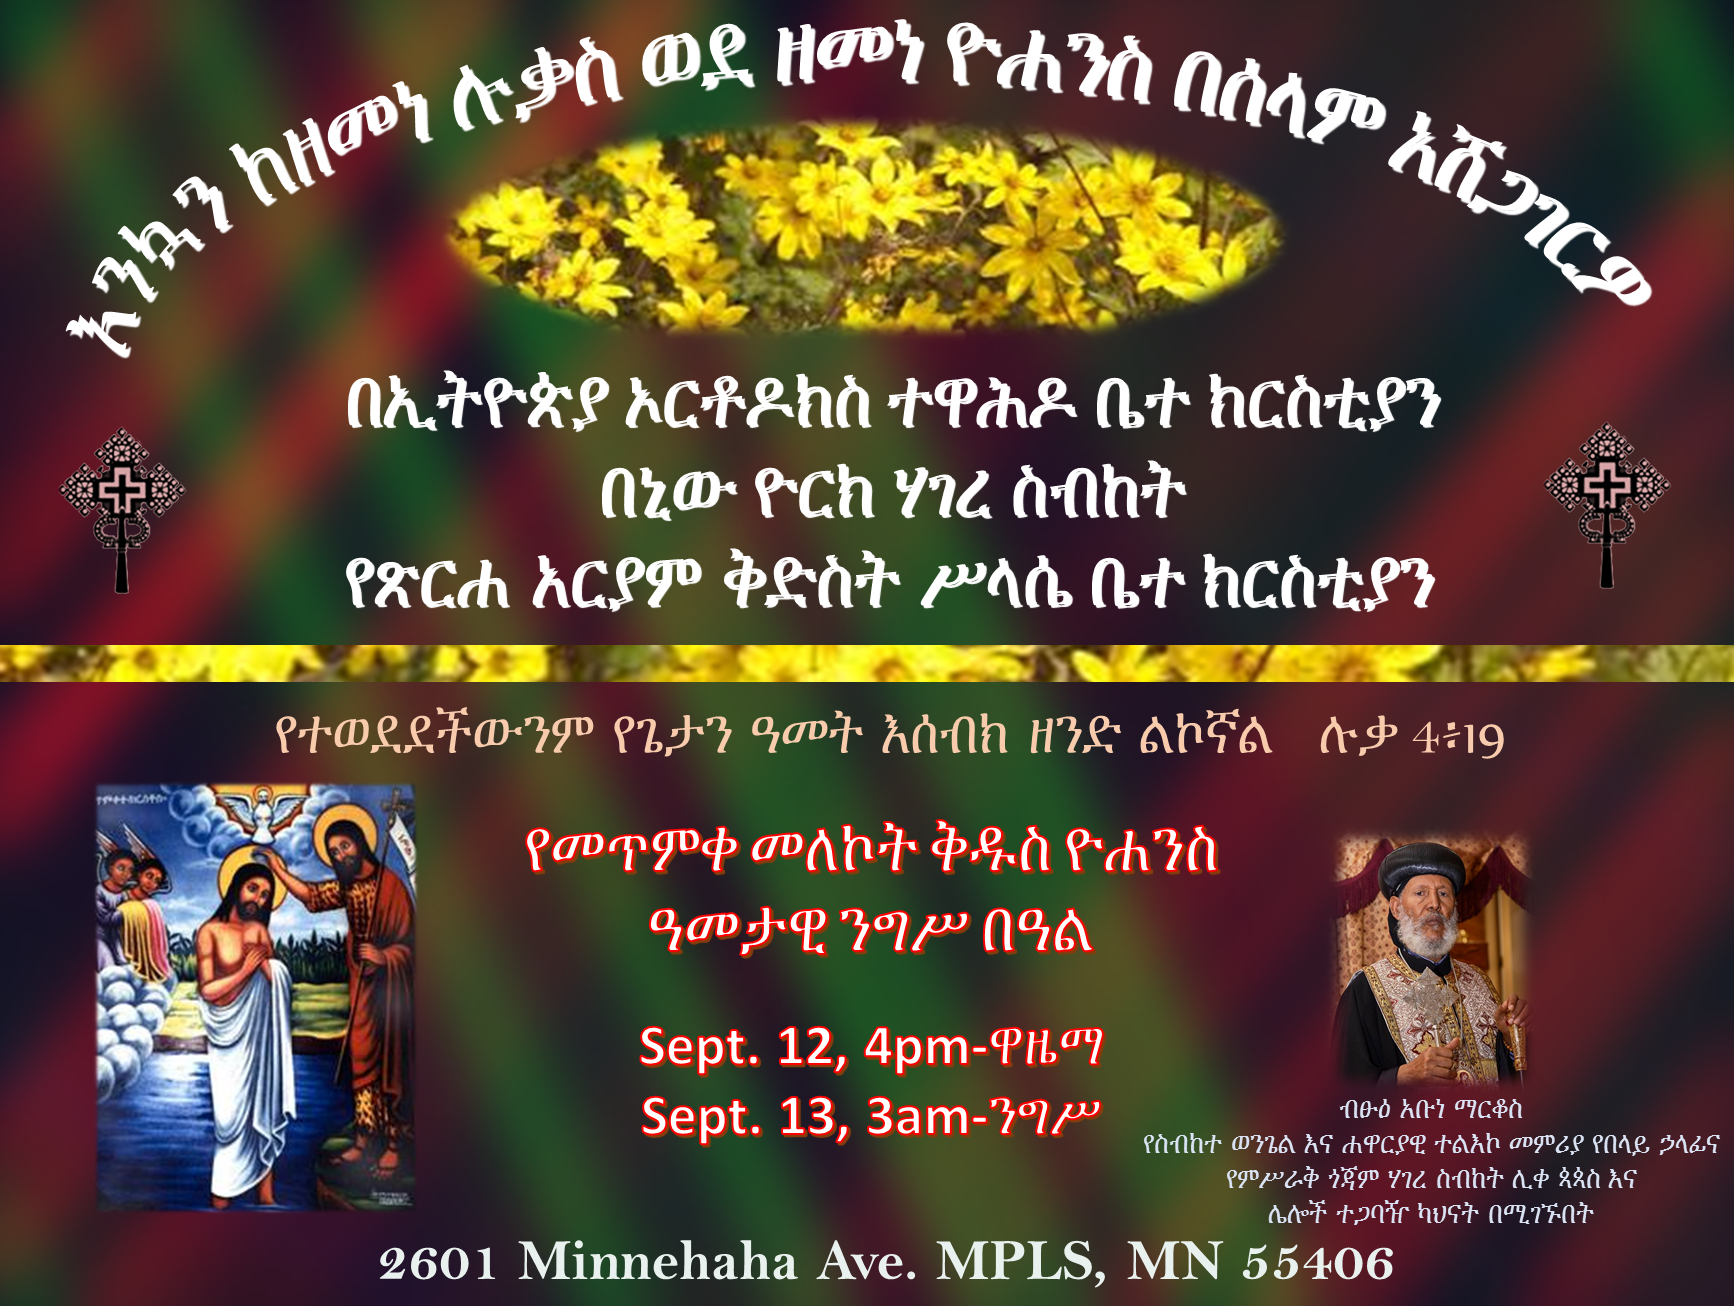 Qidus Yohannes and New Year Celebration